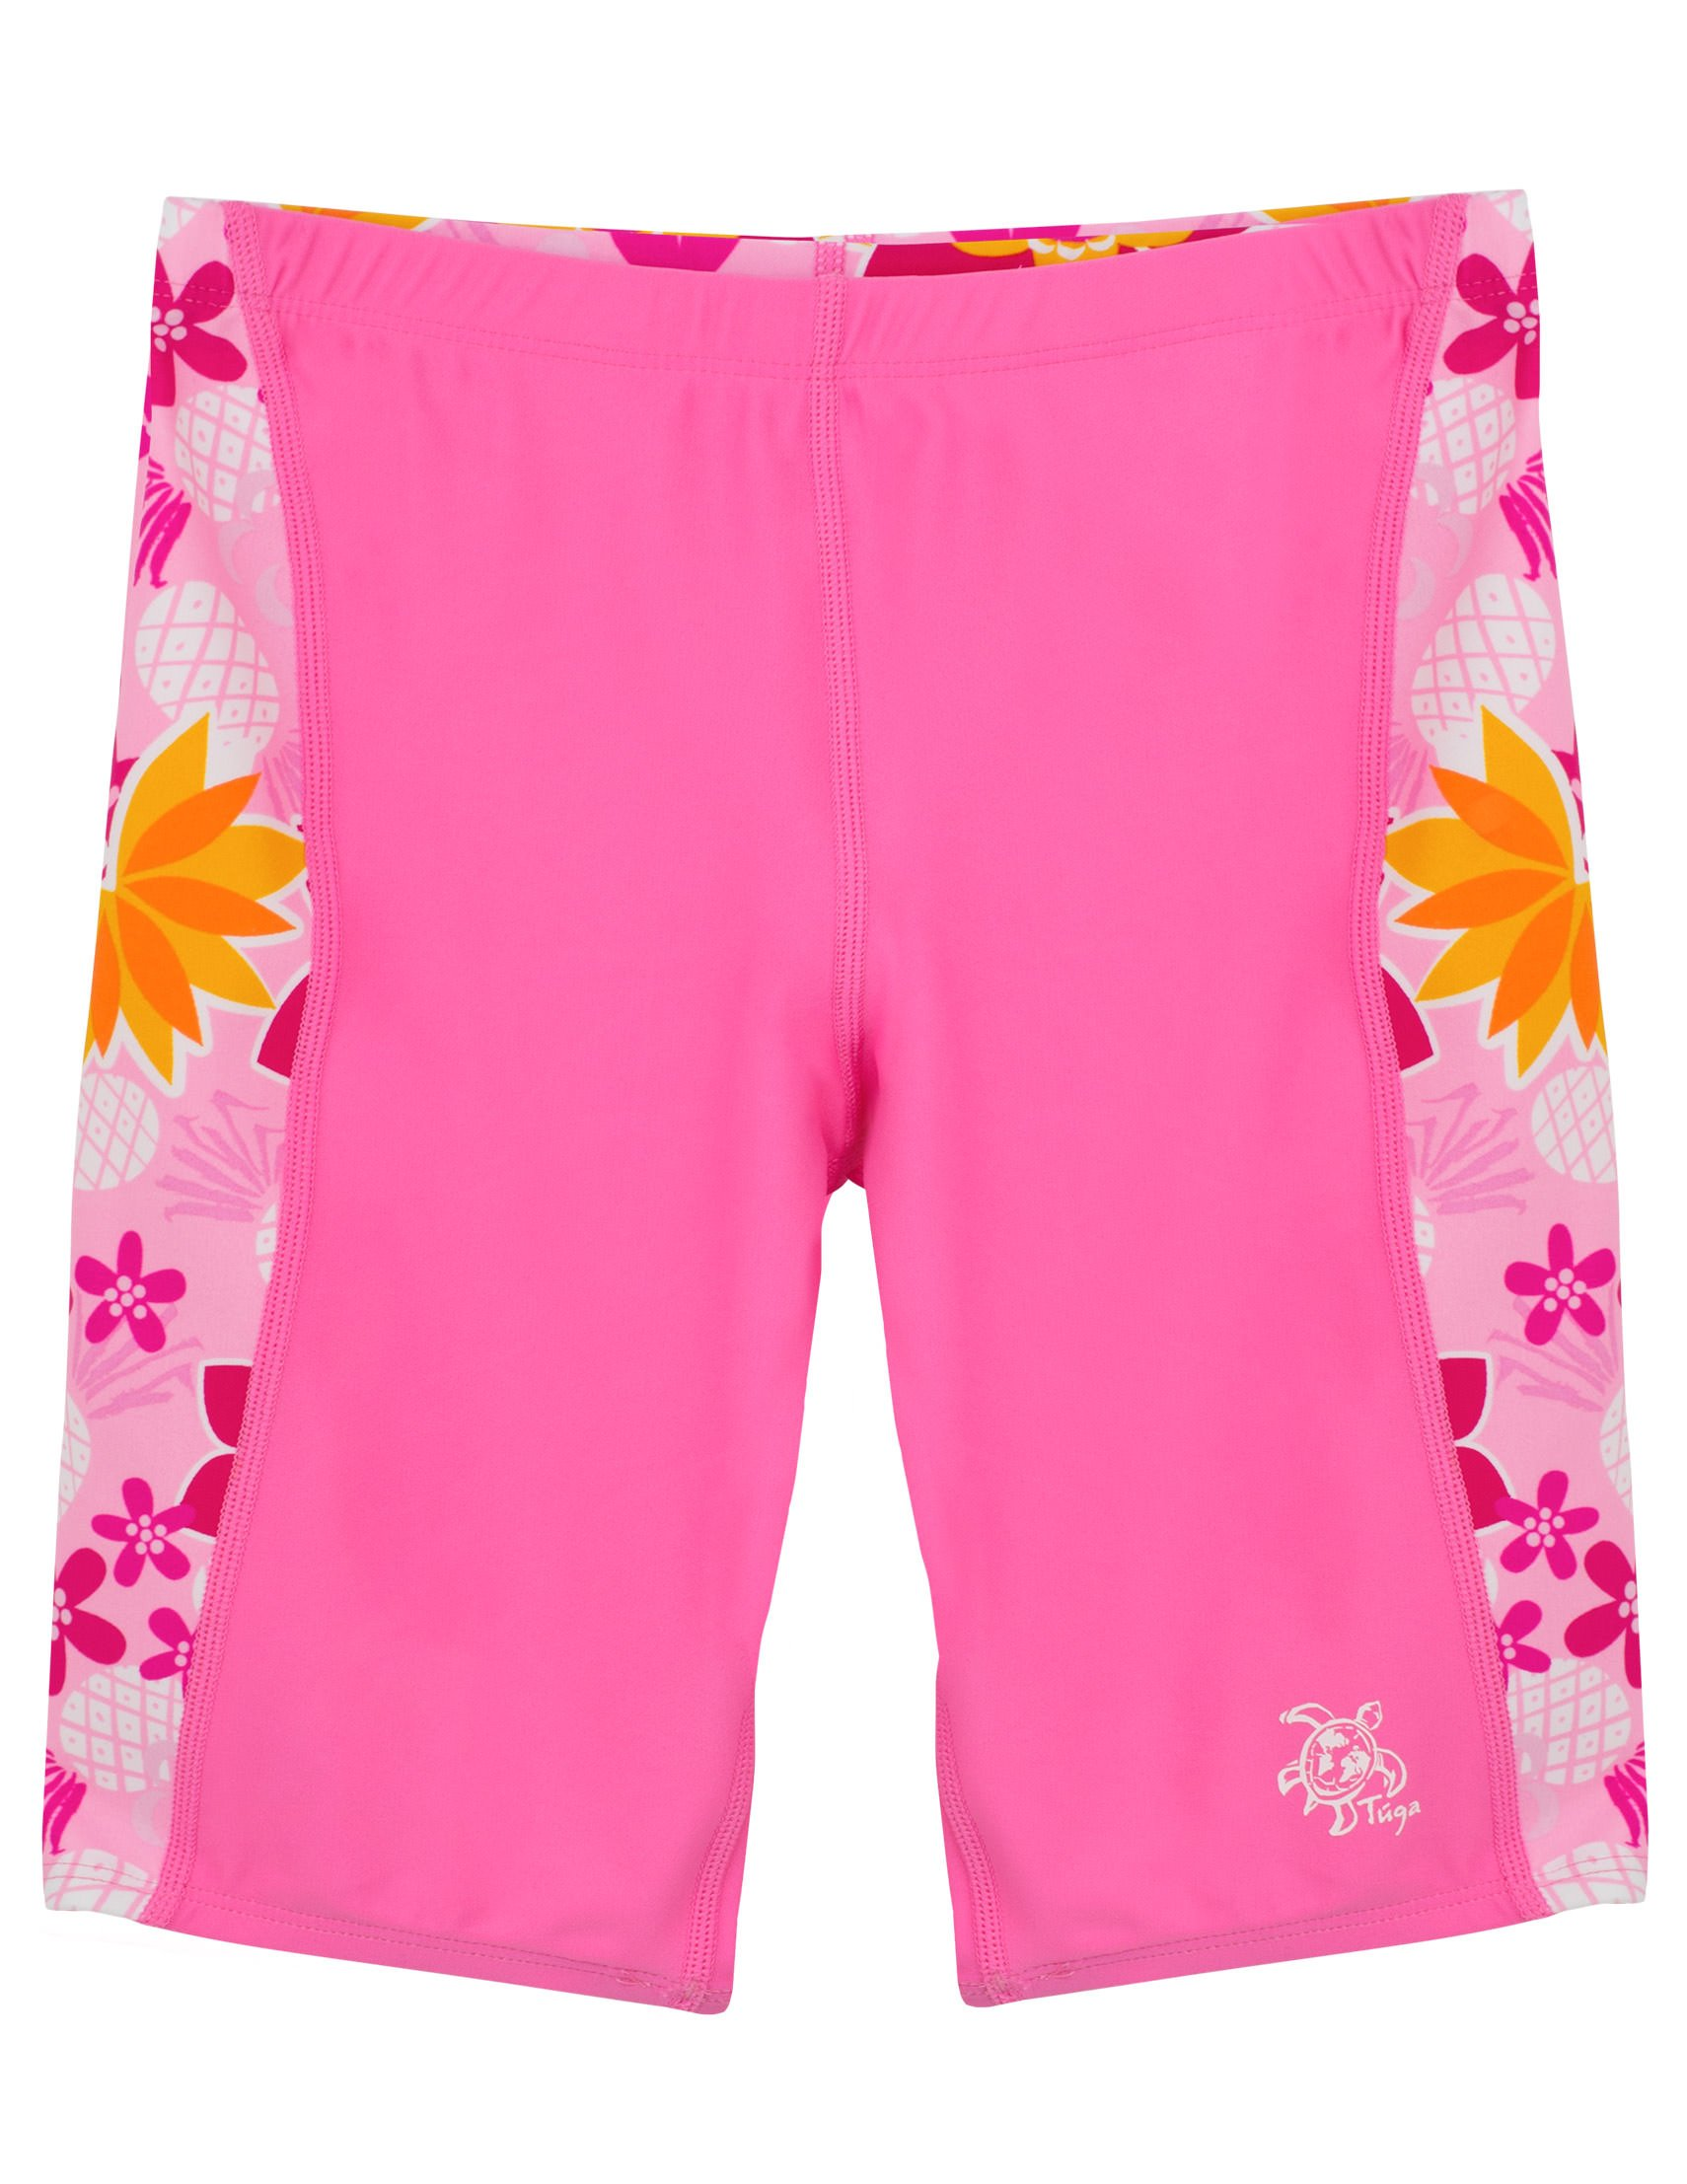 Tuga Girls Swim Jammer Short 2-14 Years, UPF 50+ Sun Protection Board Short